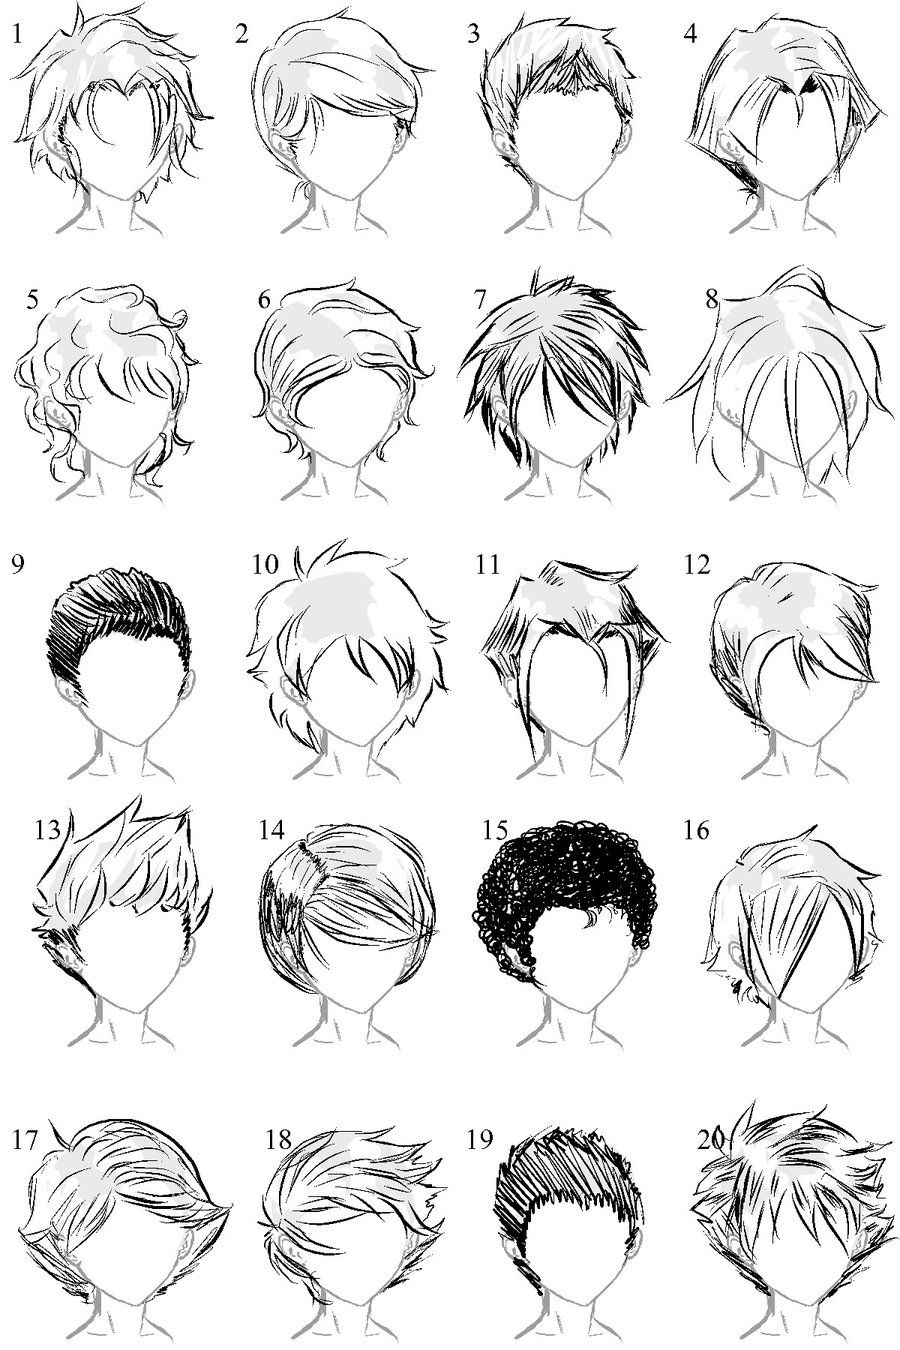 20 More Male Hairstyles by LazyCatSleepsDaily on